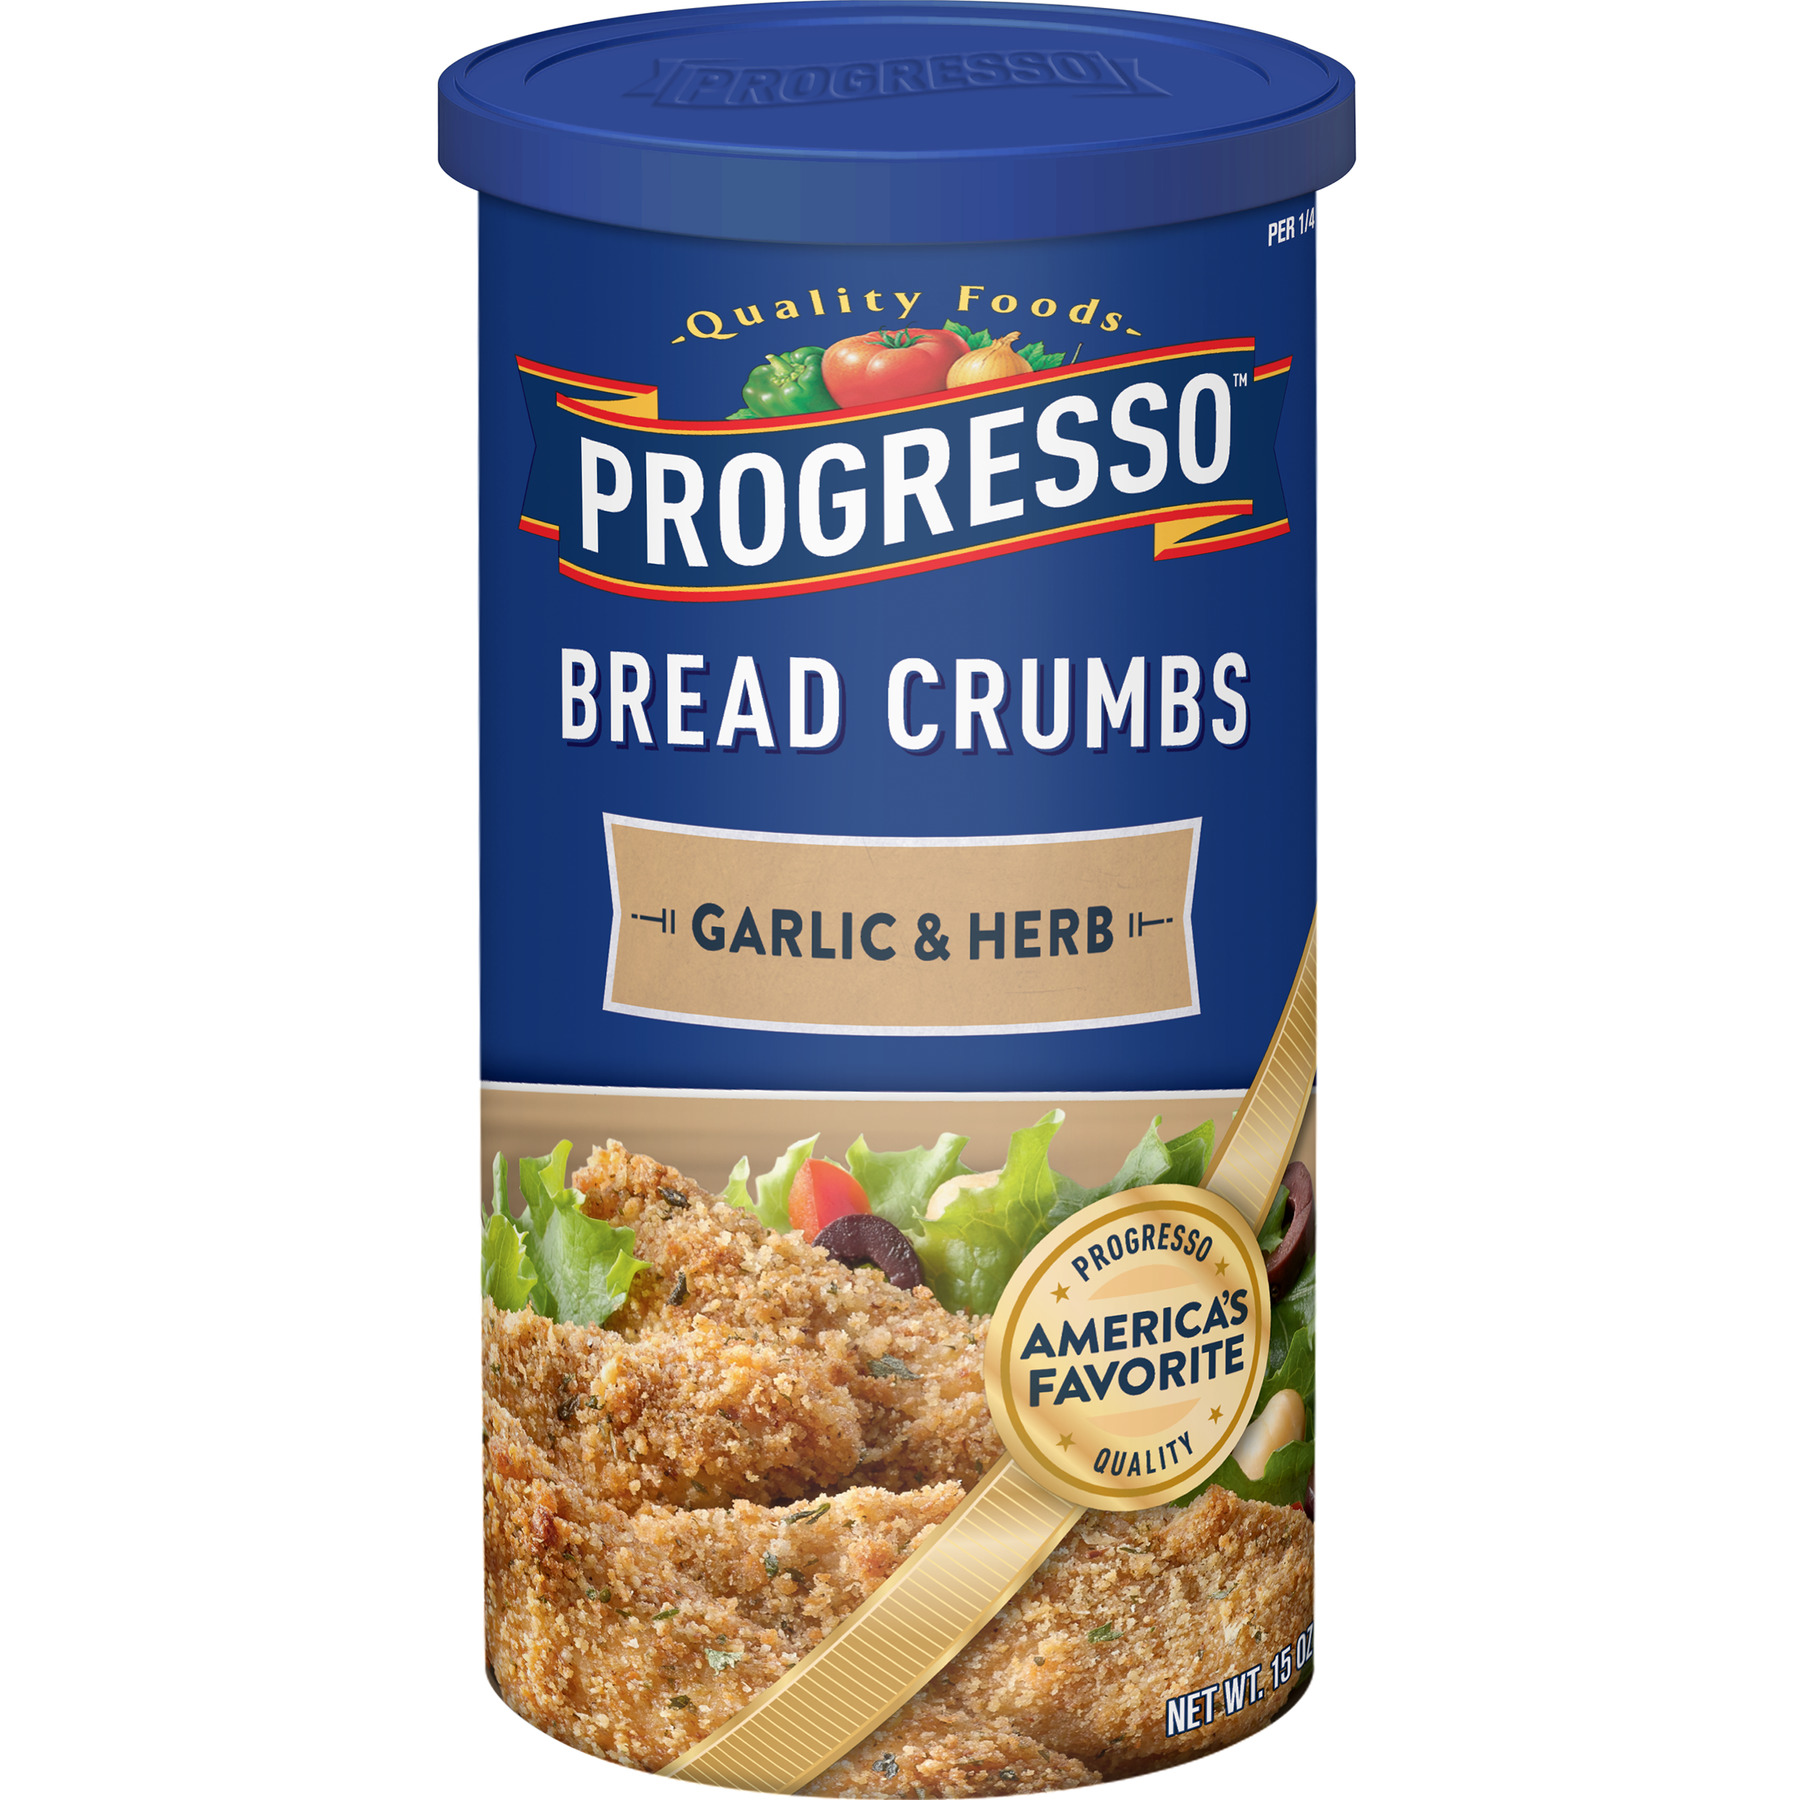 Progresso Garlic and Herb Bread Crumbs, 15 oz Container